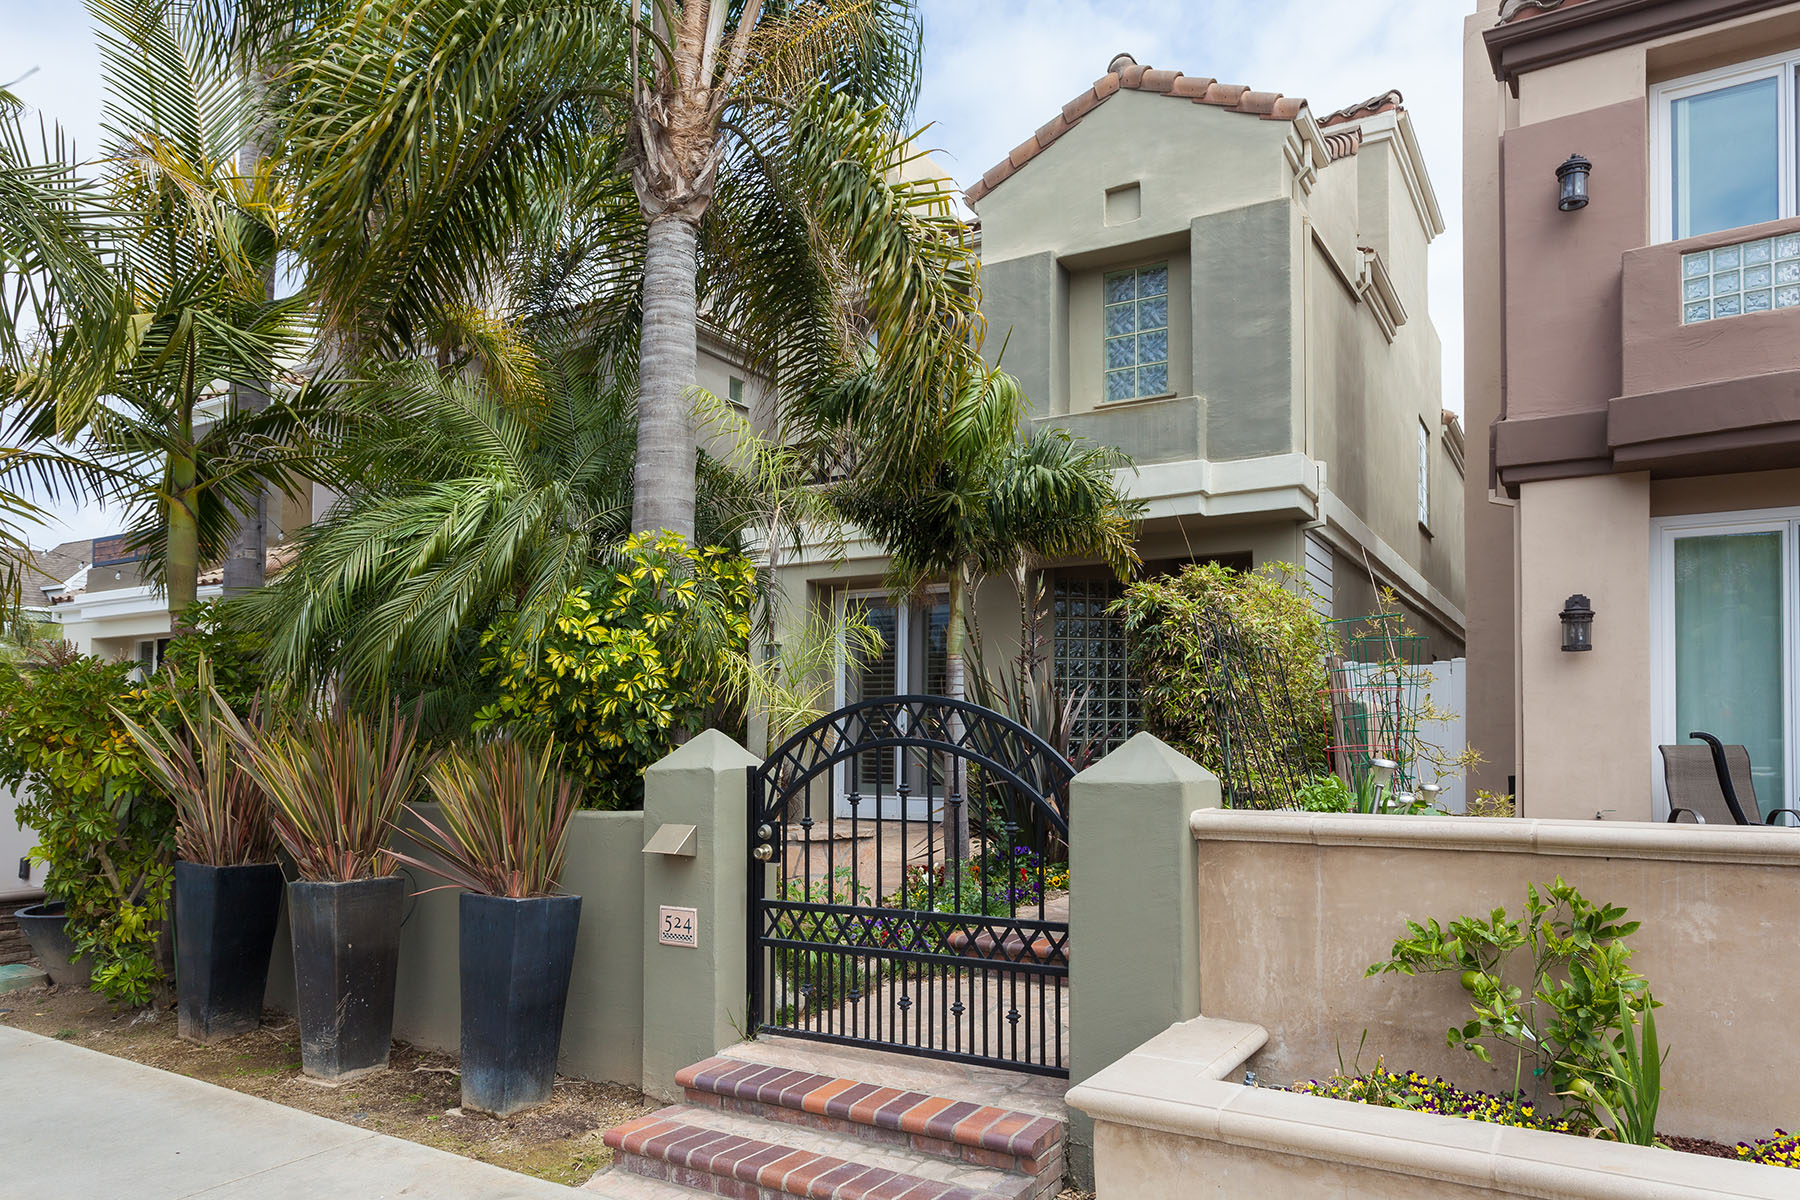 Single Family Home for Sale at 524 21st Street Huntington Beach, California 92648 United States